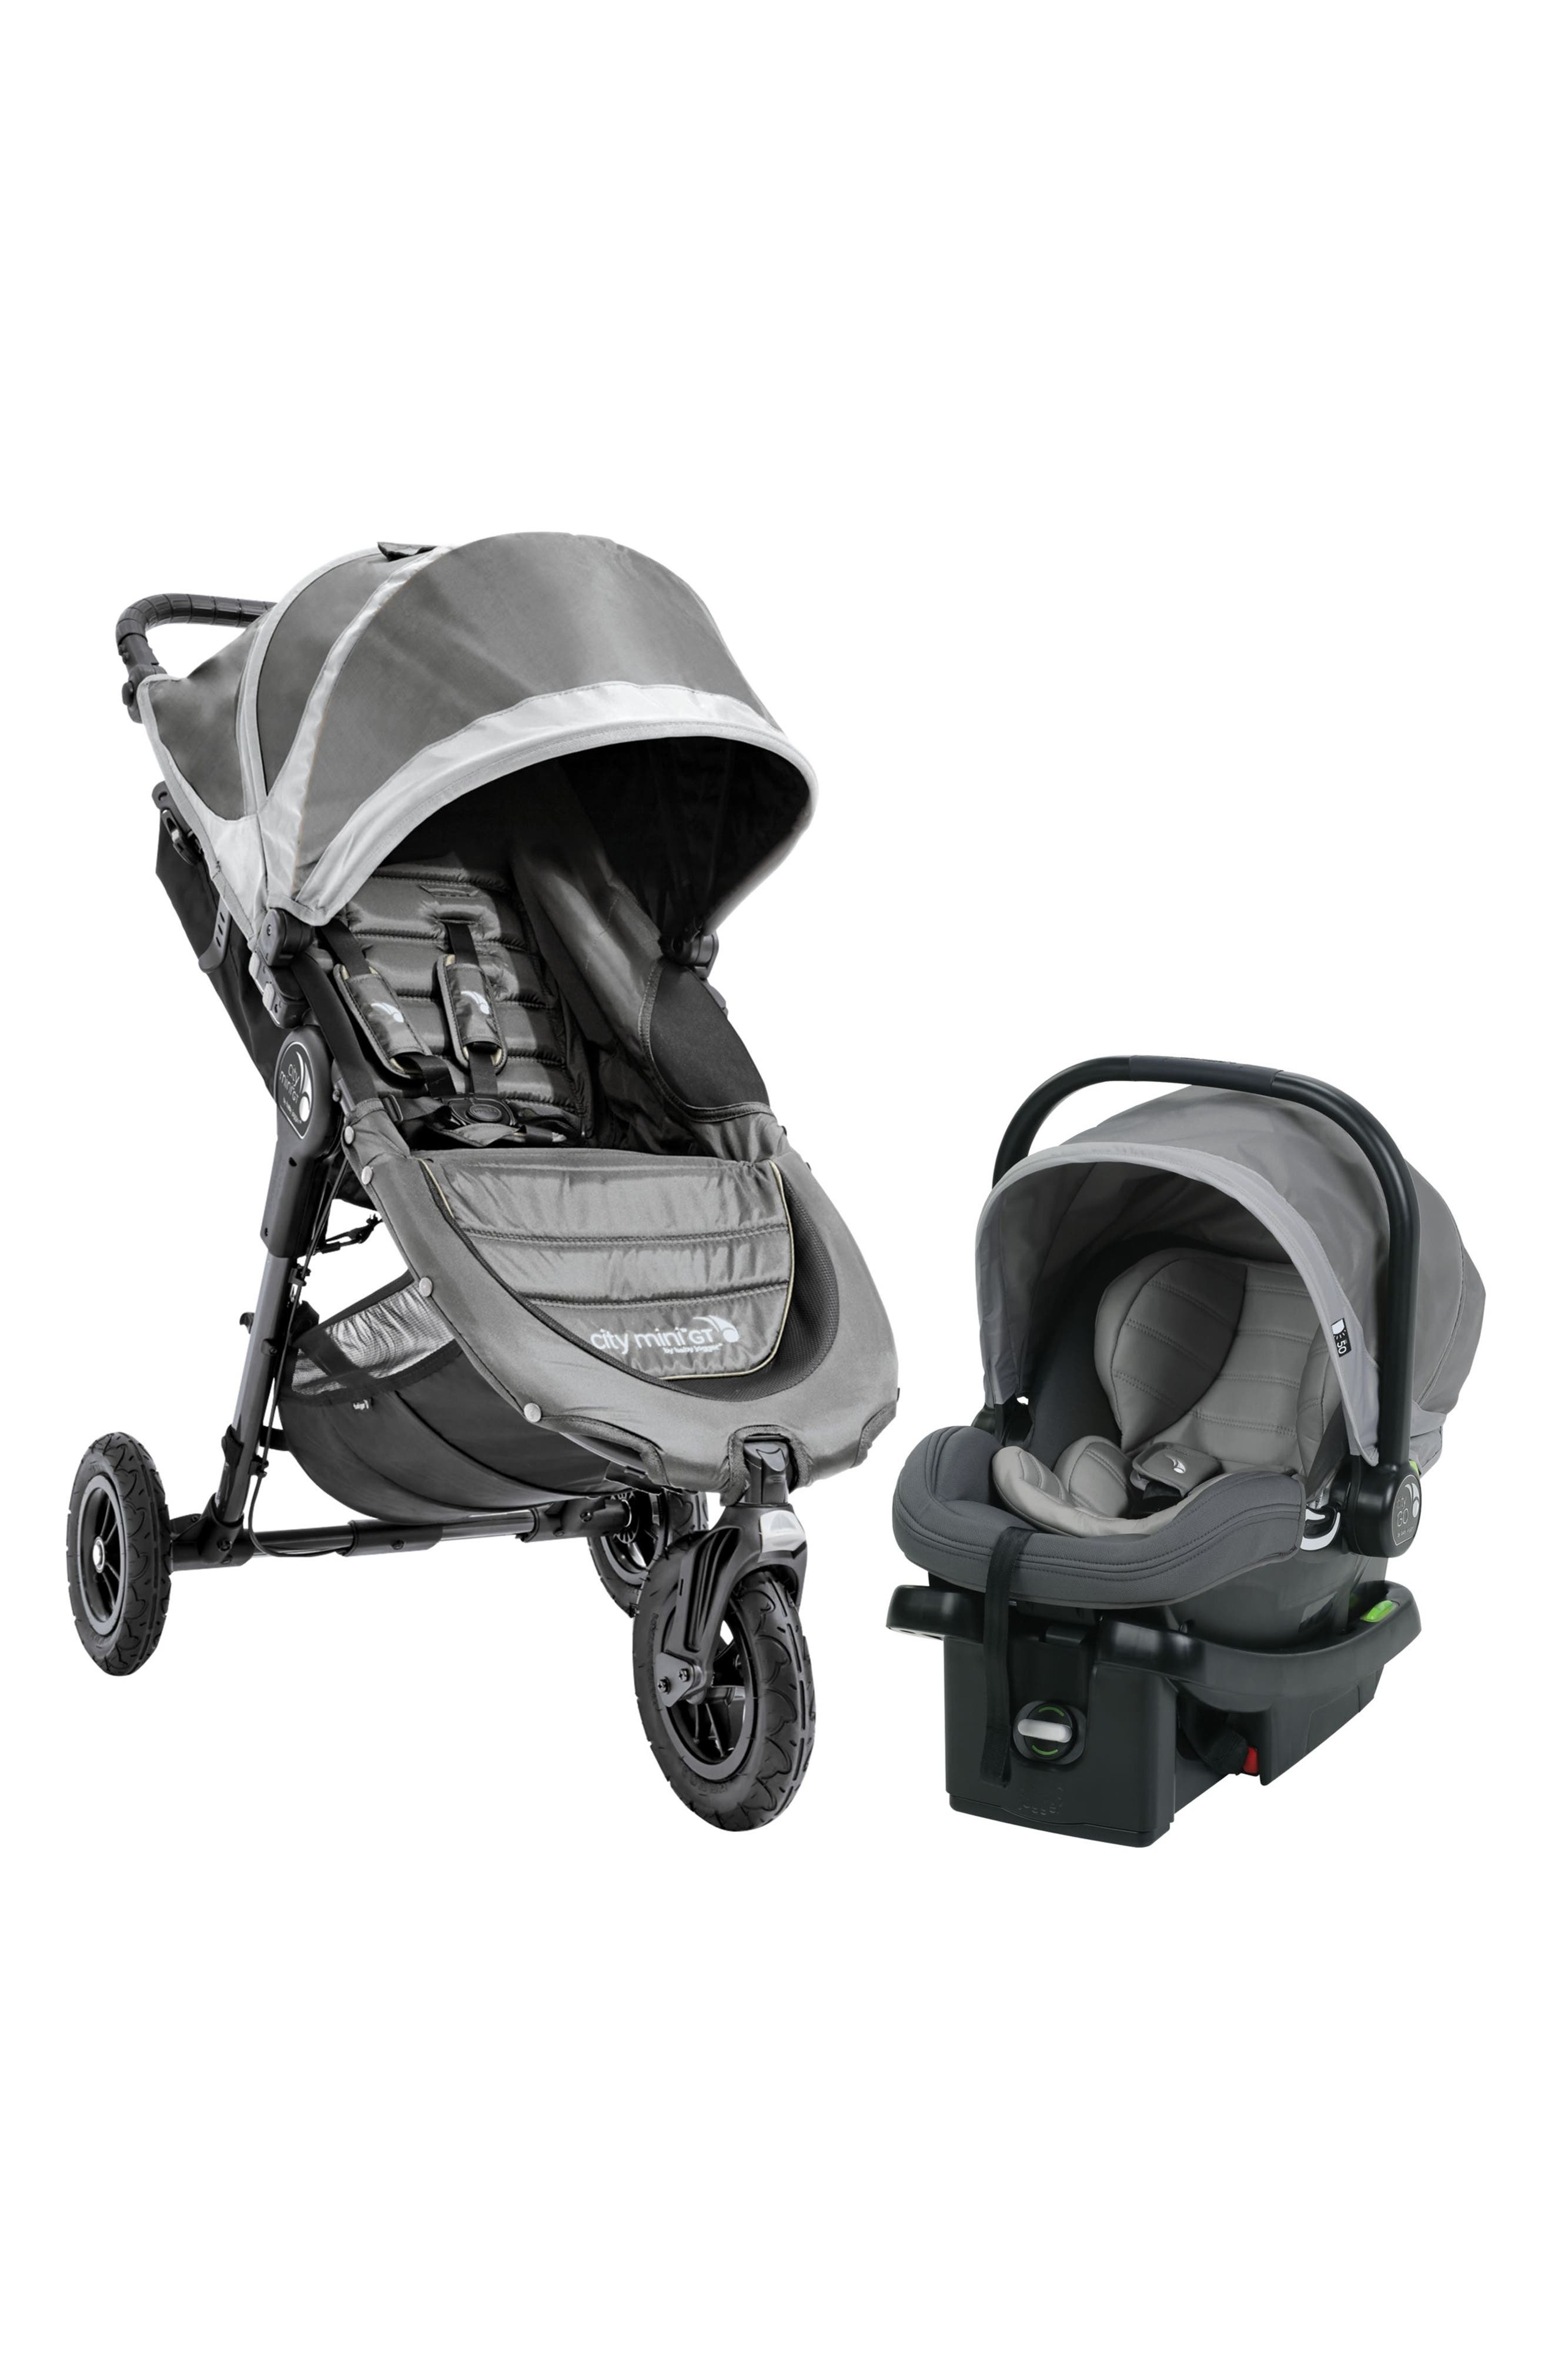 City Mini Single Stroller & City Go Infant Car Seat Travel System,                             Main thumbnail 1, color,                             STEEL GREY